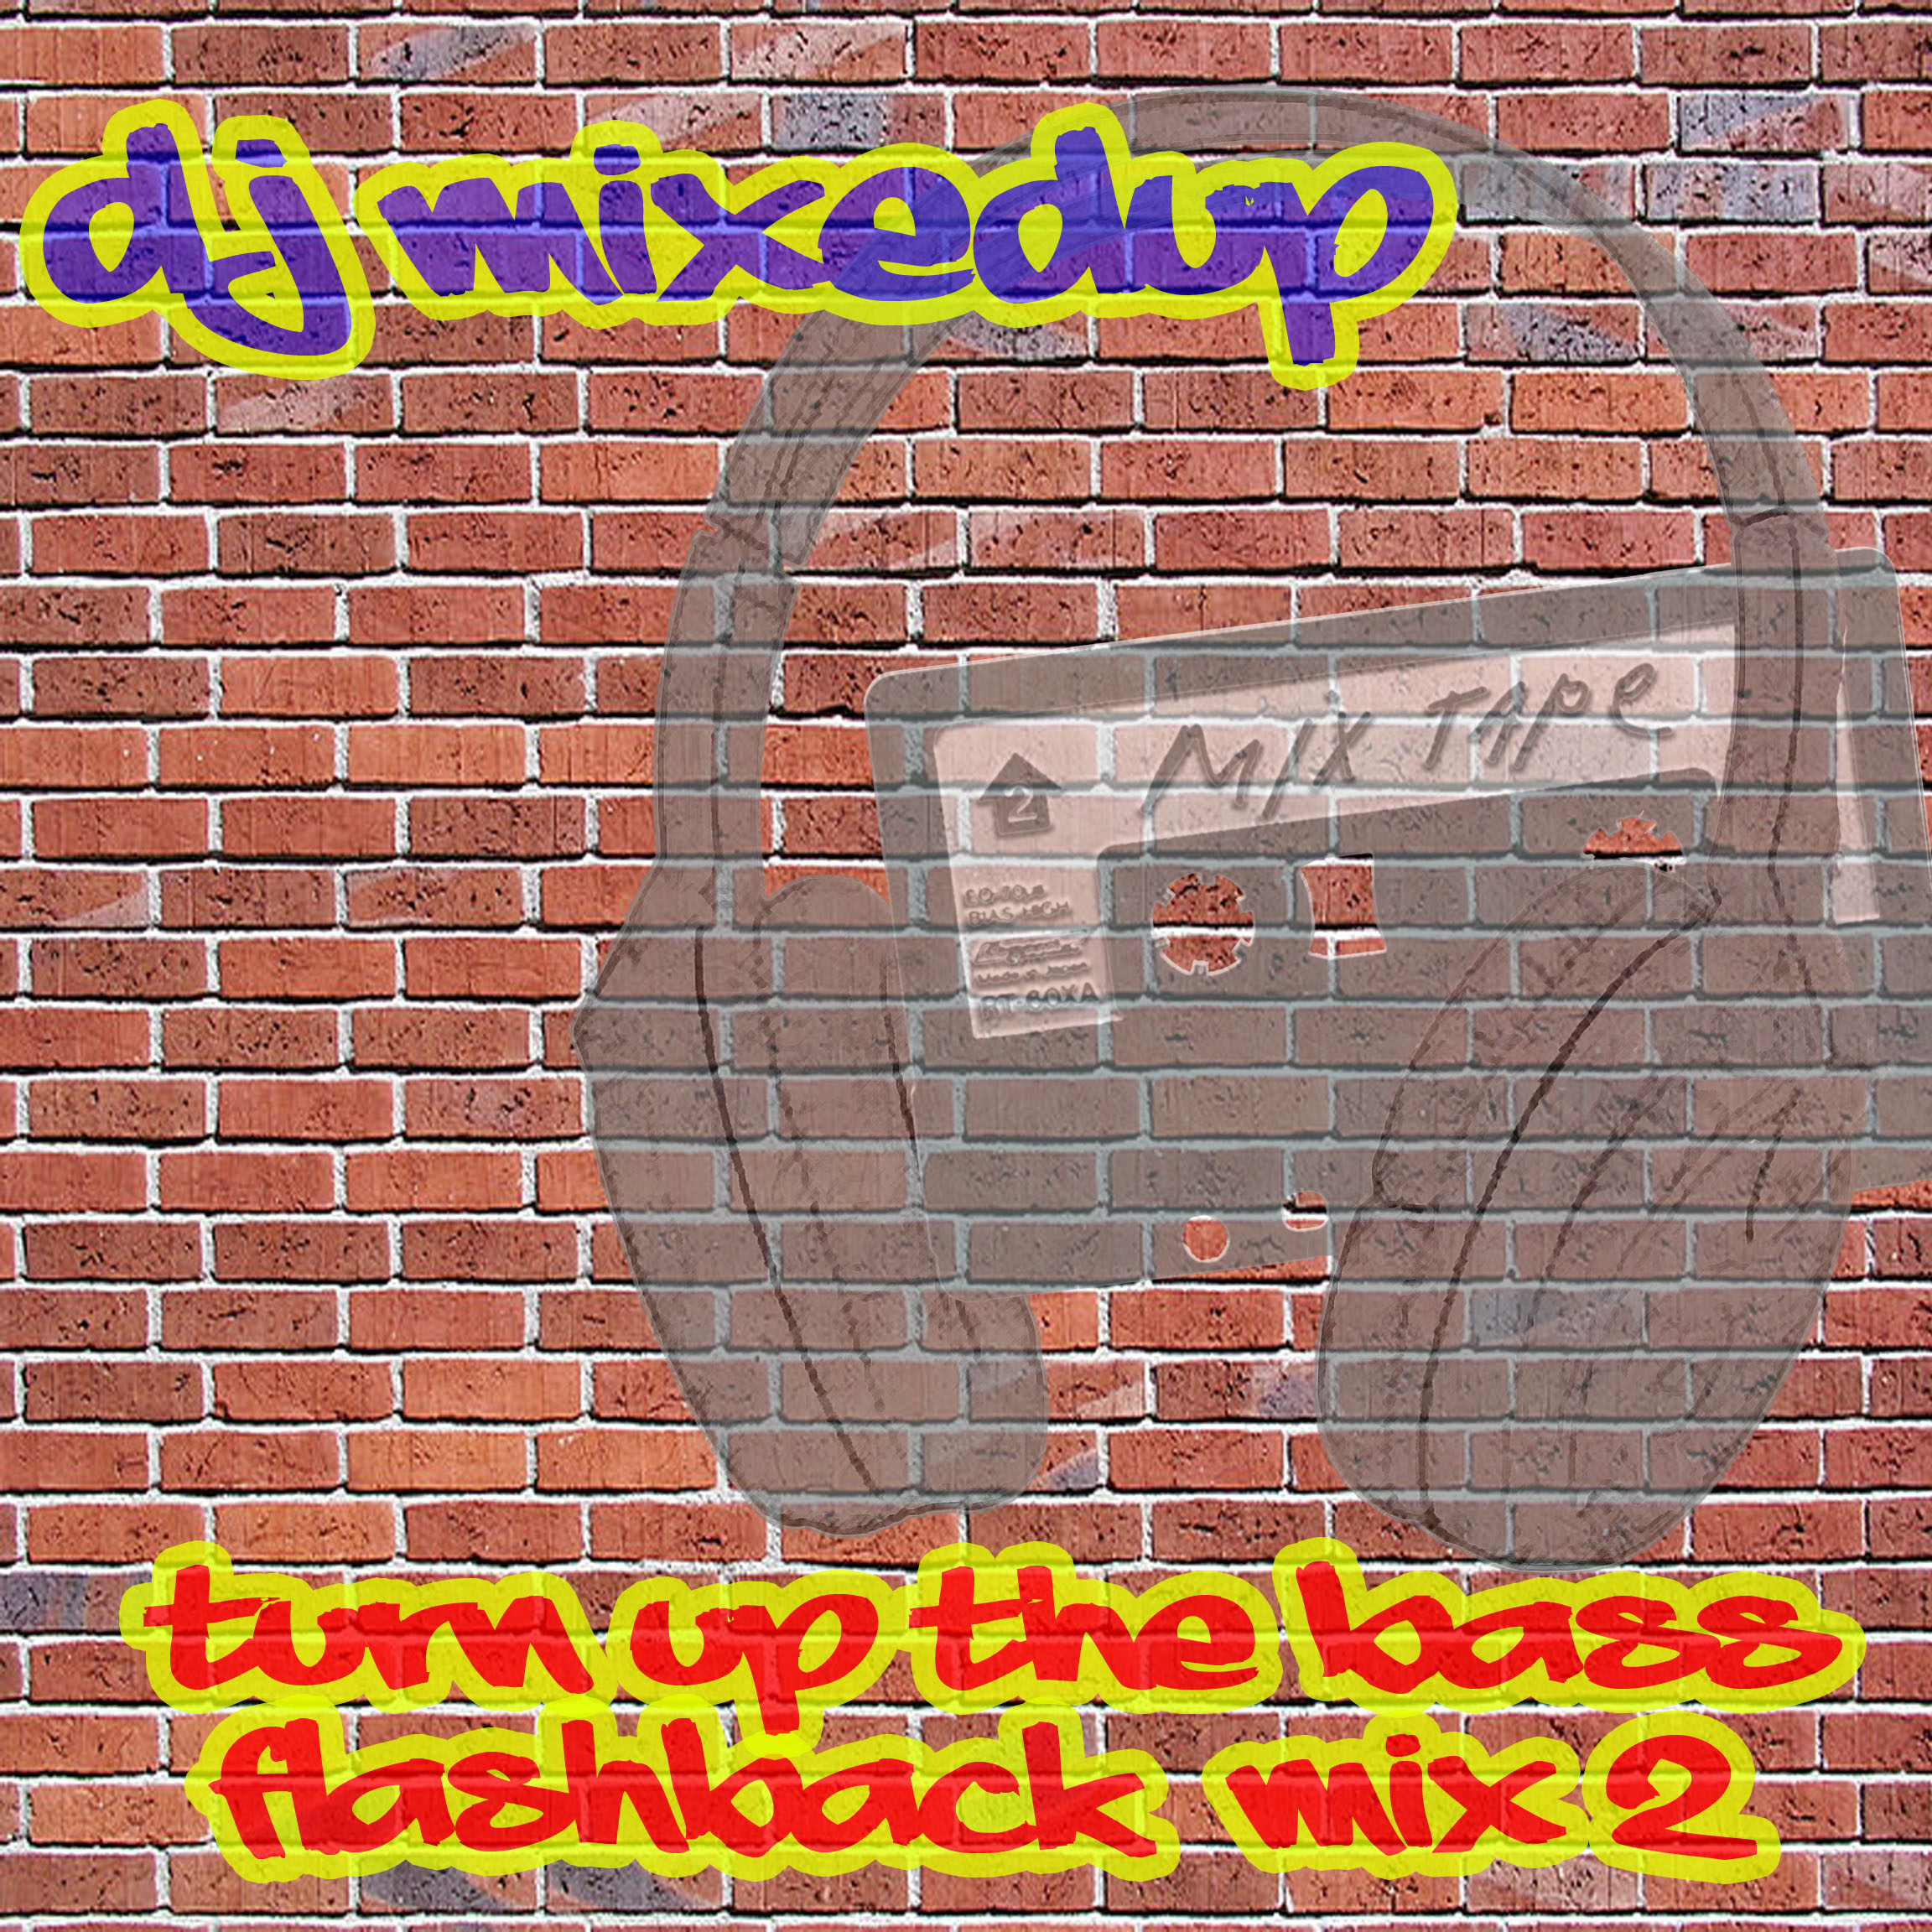 dj mixedup-turn up the bass flashbackmix 2